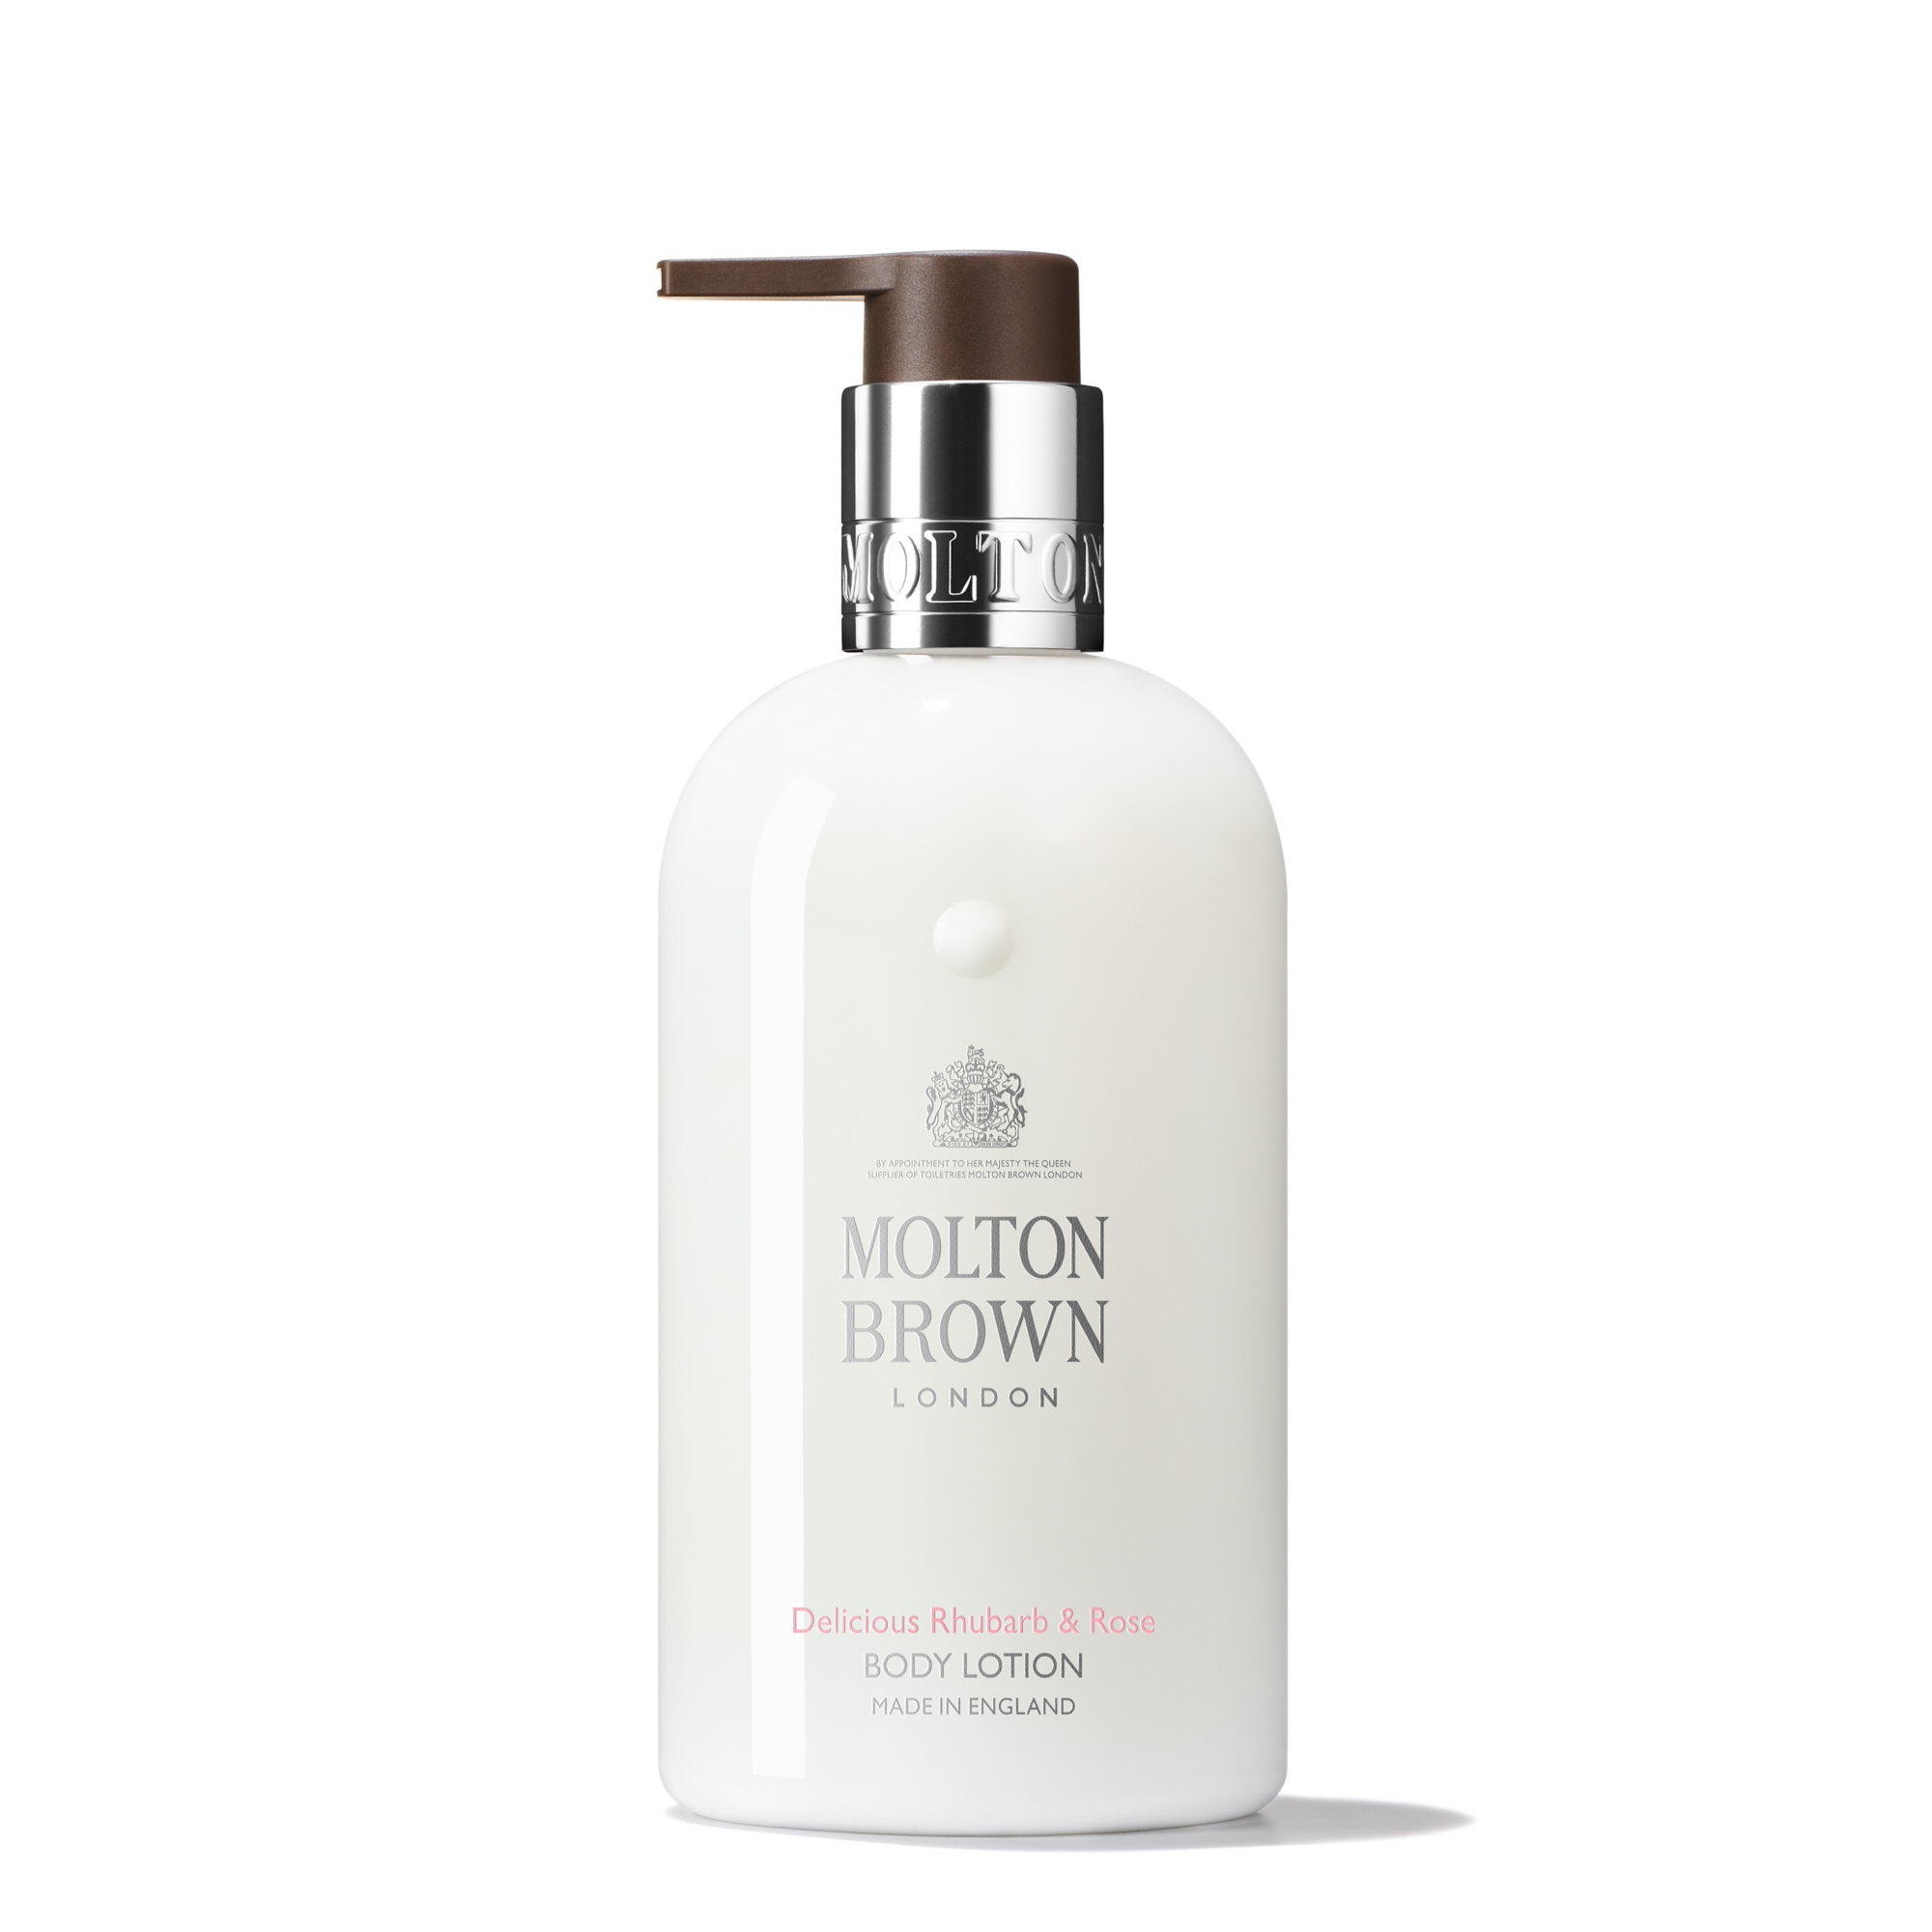 Delicious Rhubarb & Rose Body Lotion